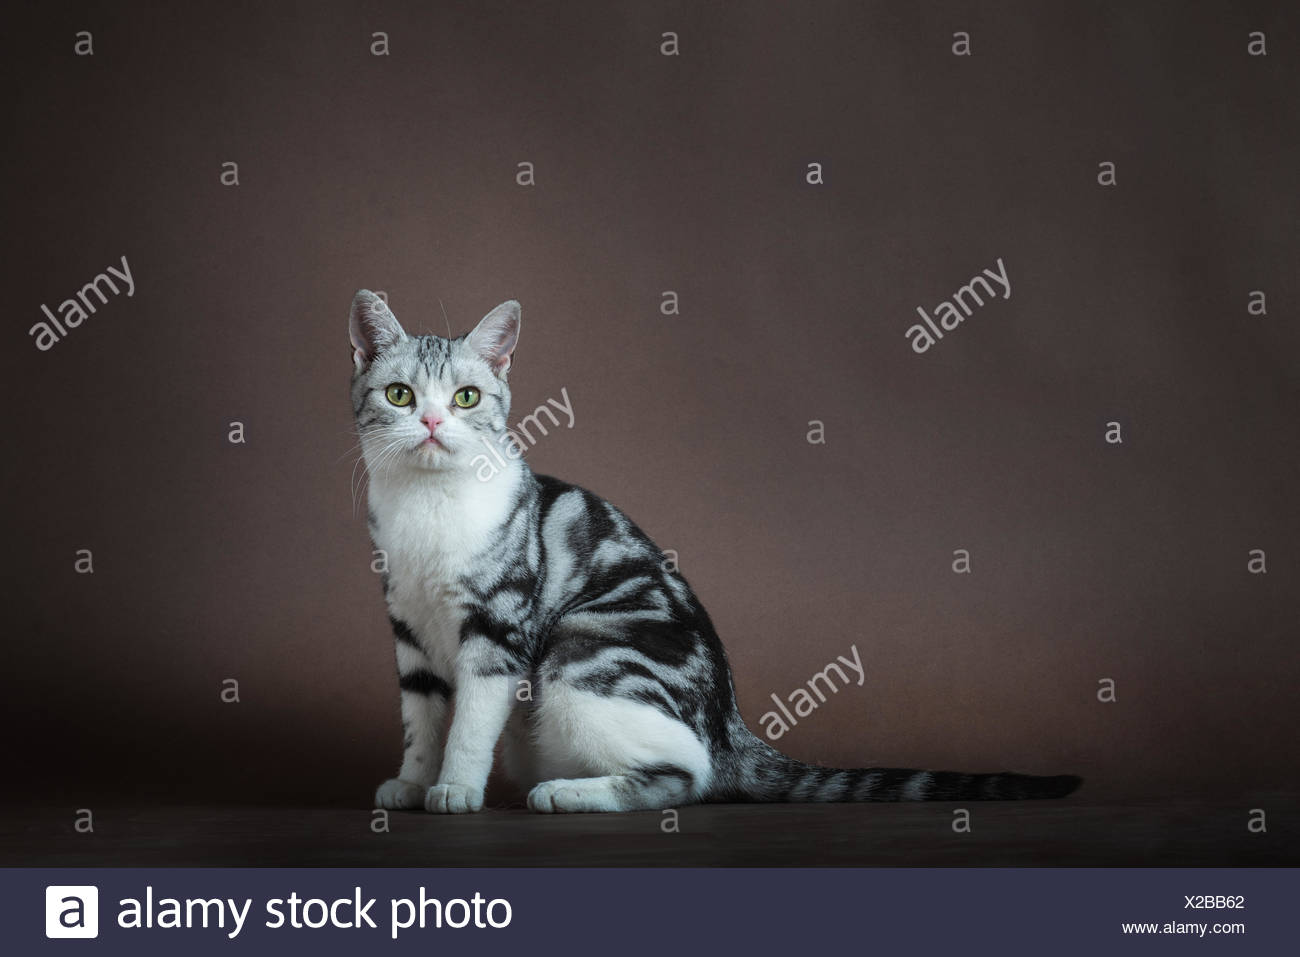 American Shorthair Orange Tabby Cat Stock Photos & American ...